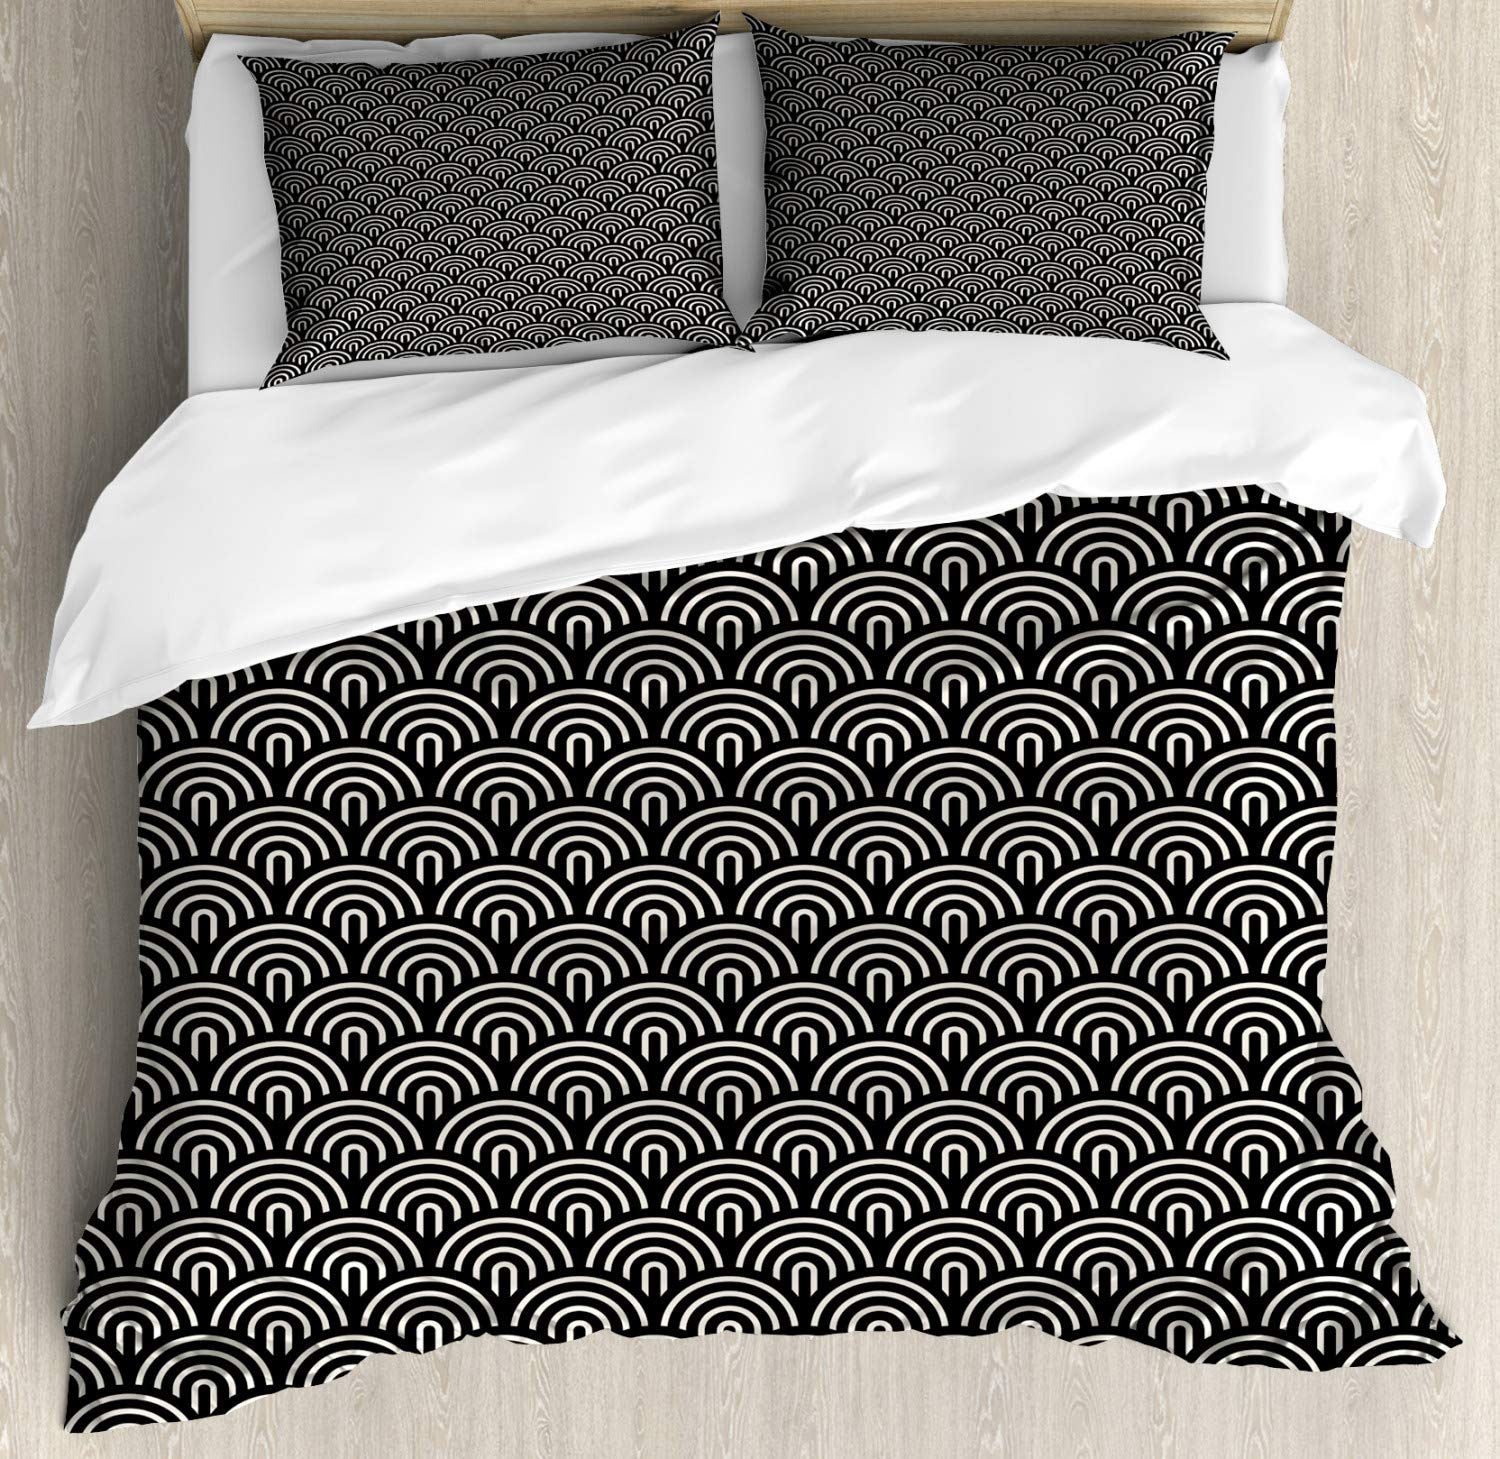 Ambesonne Scale Duvet Cover Set Overlapping Half Circle Arcs Modern Art Deco Style Geometric Composition Decorative 3 Piece Bedding Set With 2 Pillow Shams King Size Cream Charcoal